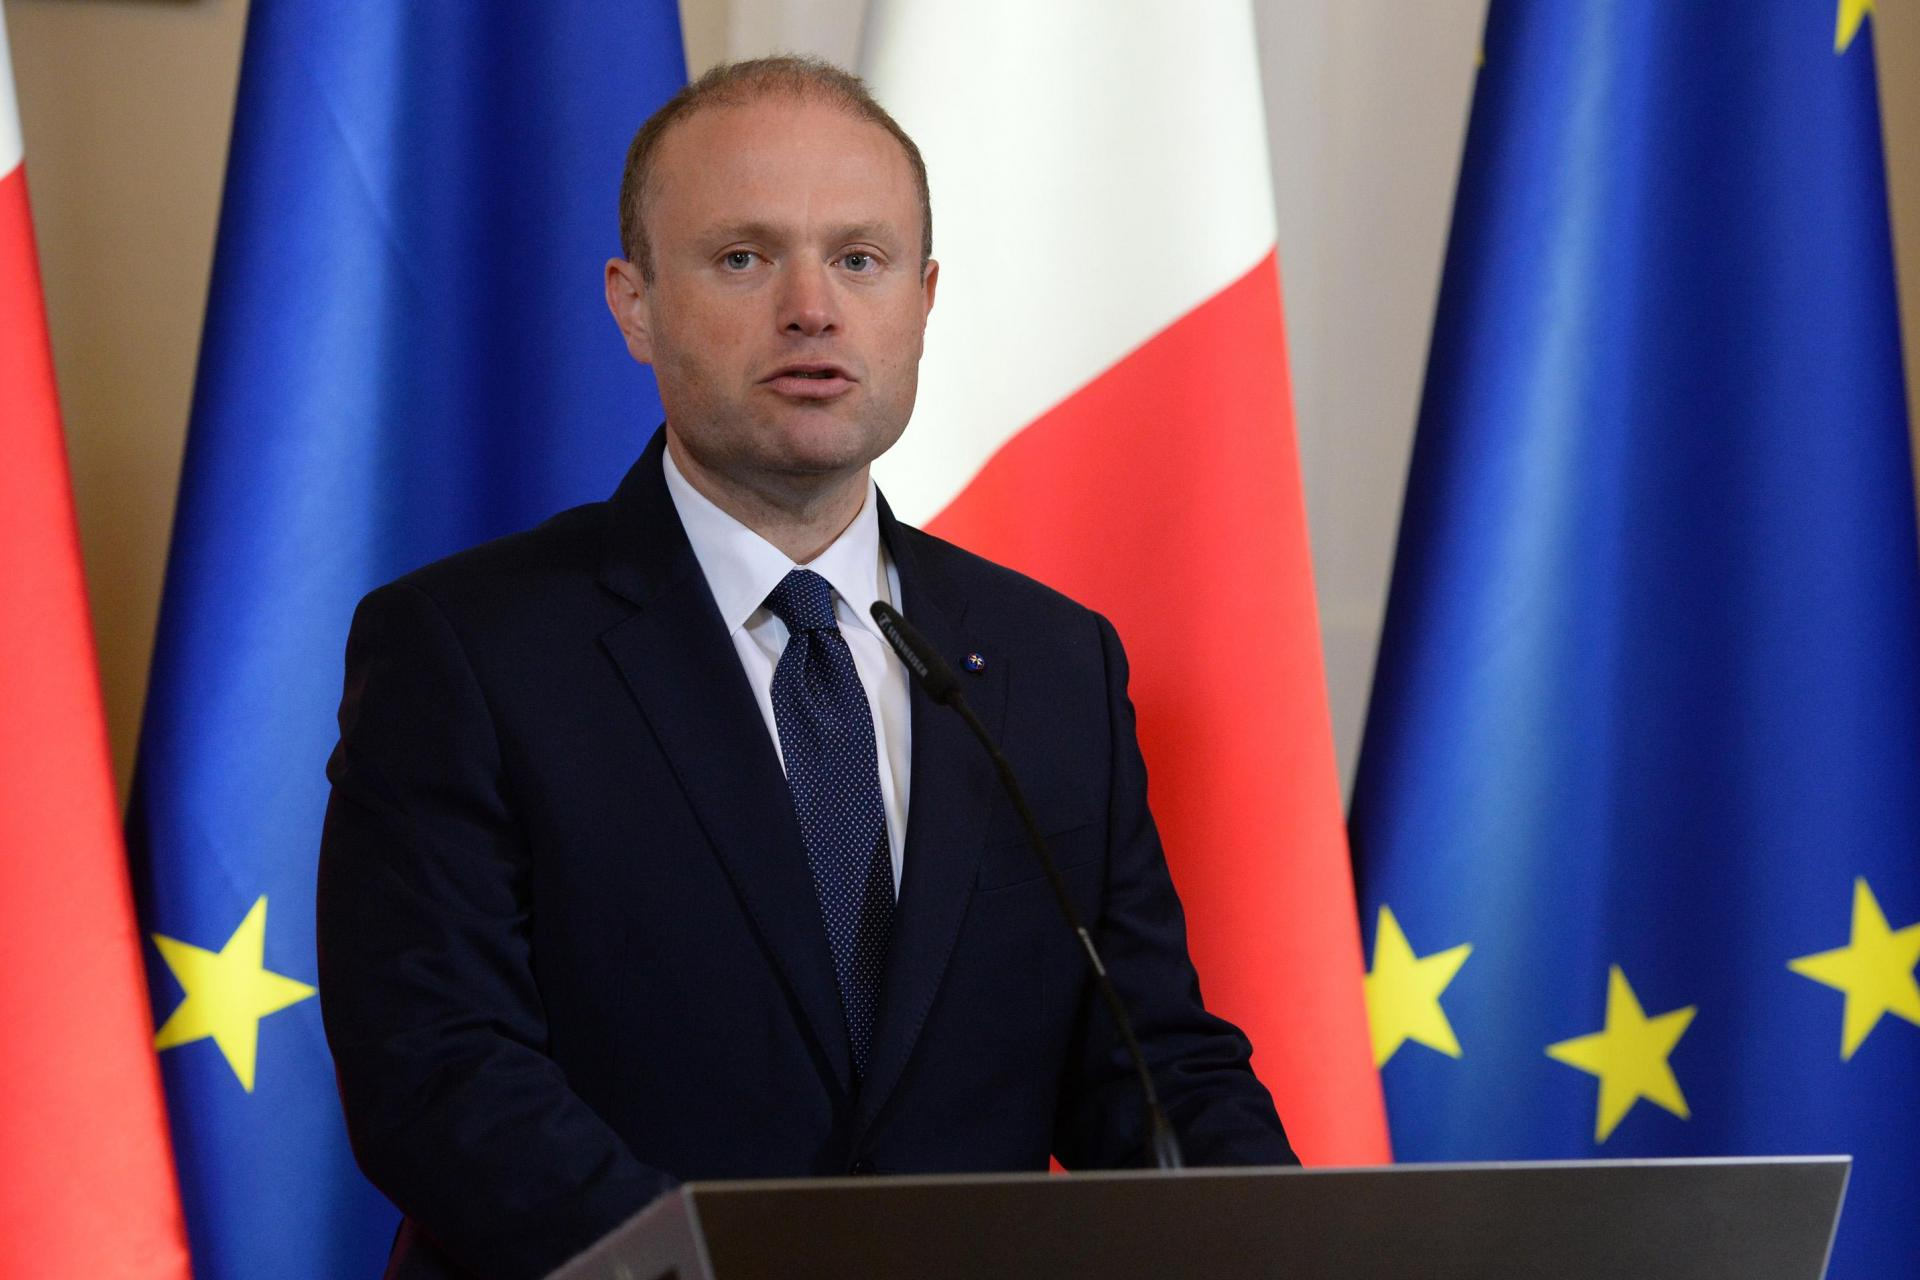 Former prime minister Joseph Muscat speaking at a press conference following Caruana Galizia's assassination. Fearne said he and Muscat did not discuss the murder in the ensuing months. Photo: Matthew Mirabelli